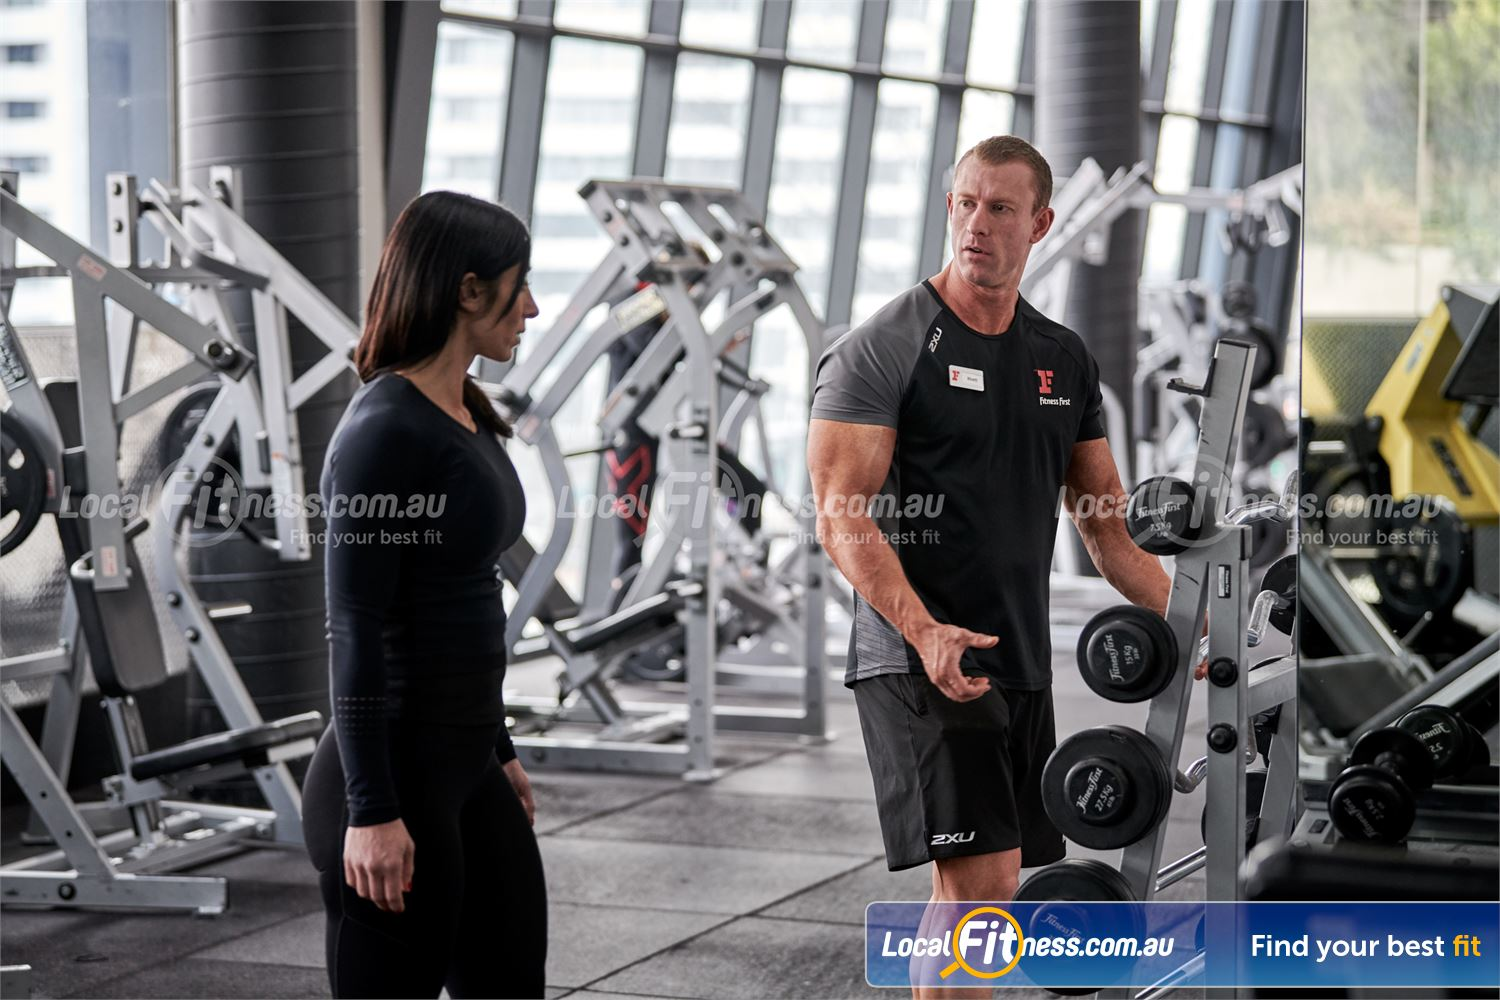 Fitness First Doncaster Get the right advice on training from our Doncaster personal training team.